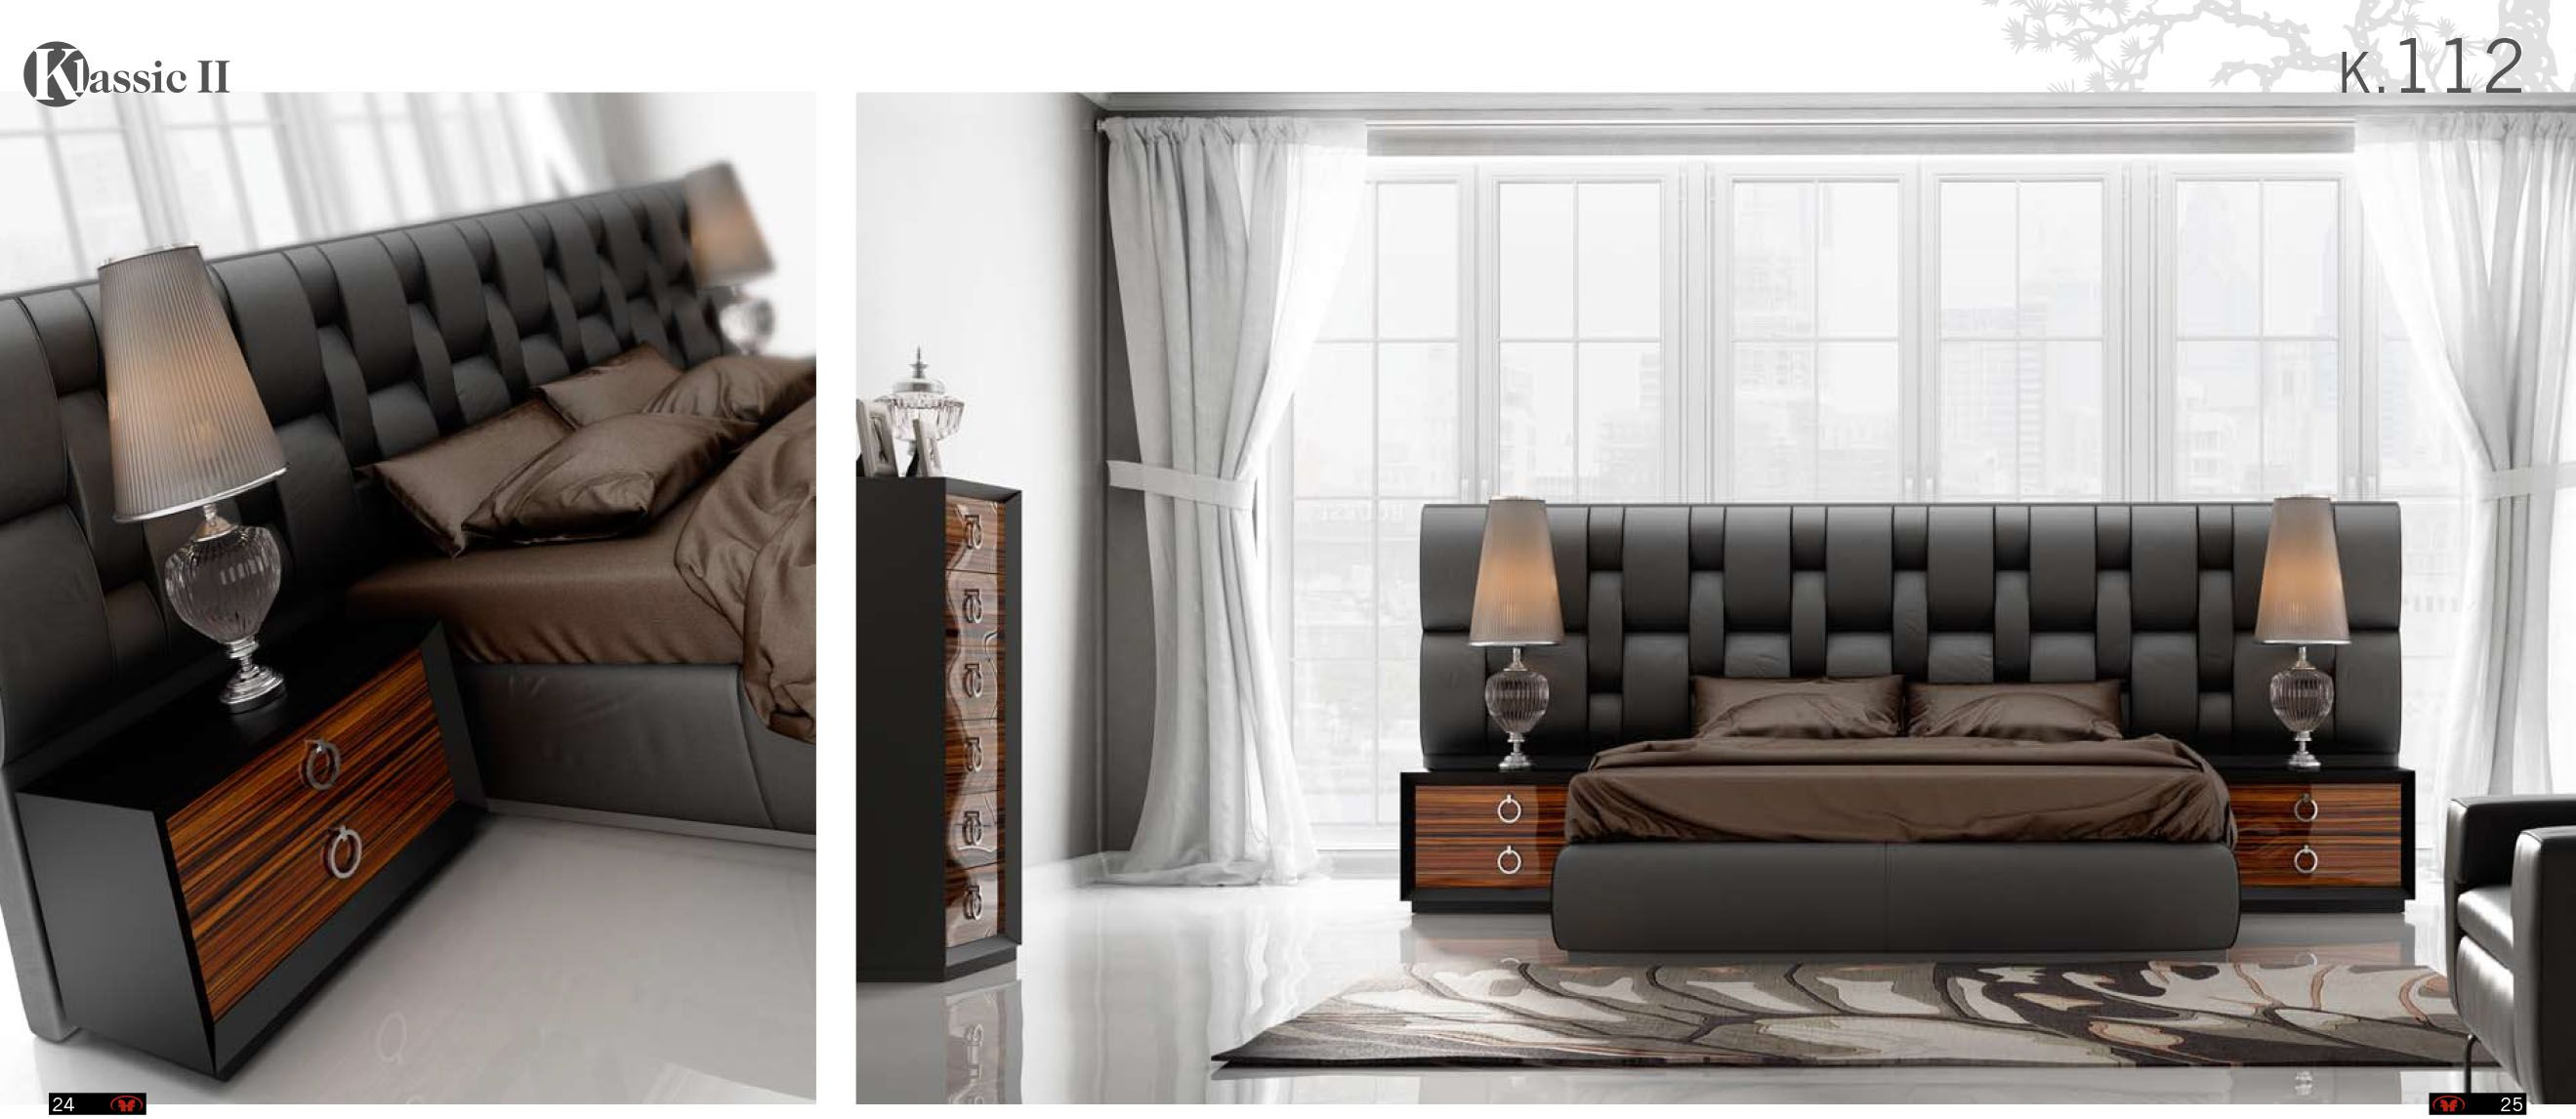 Bedrooms Living Room And Bedroom Furniture  # Muebles Franco E Hijos